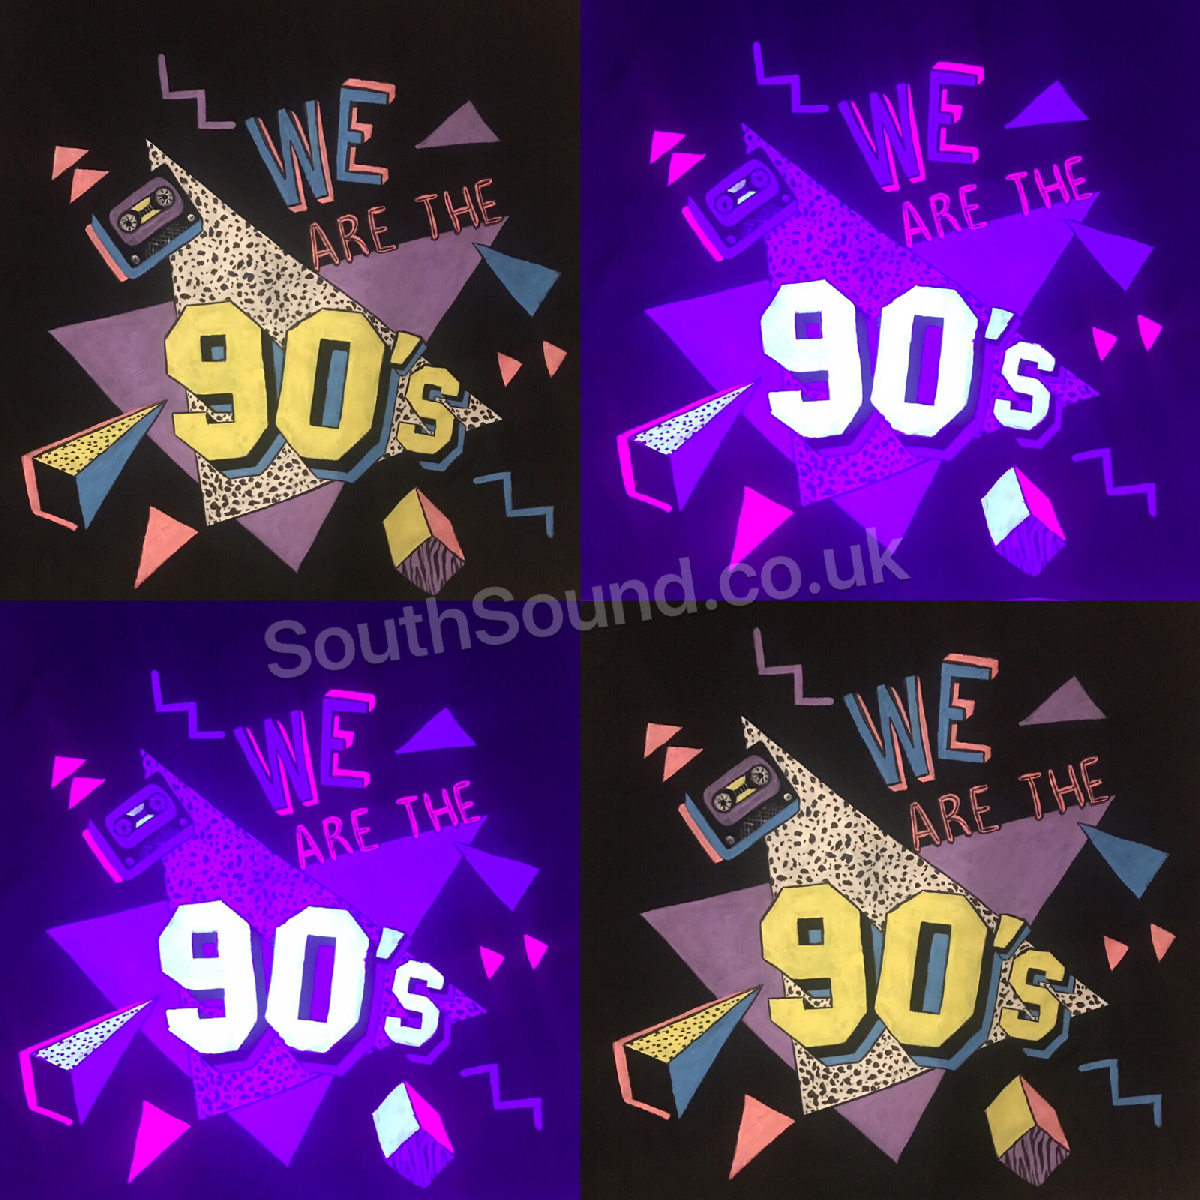 90s DJ Booth front cover glows under ultra violet